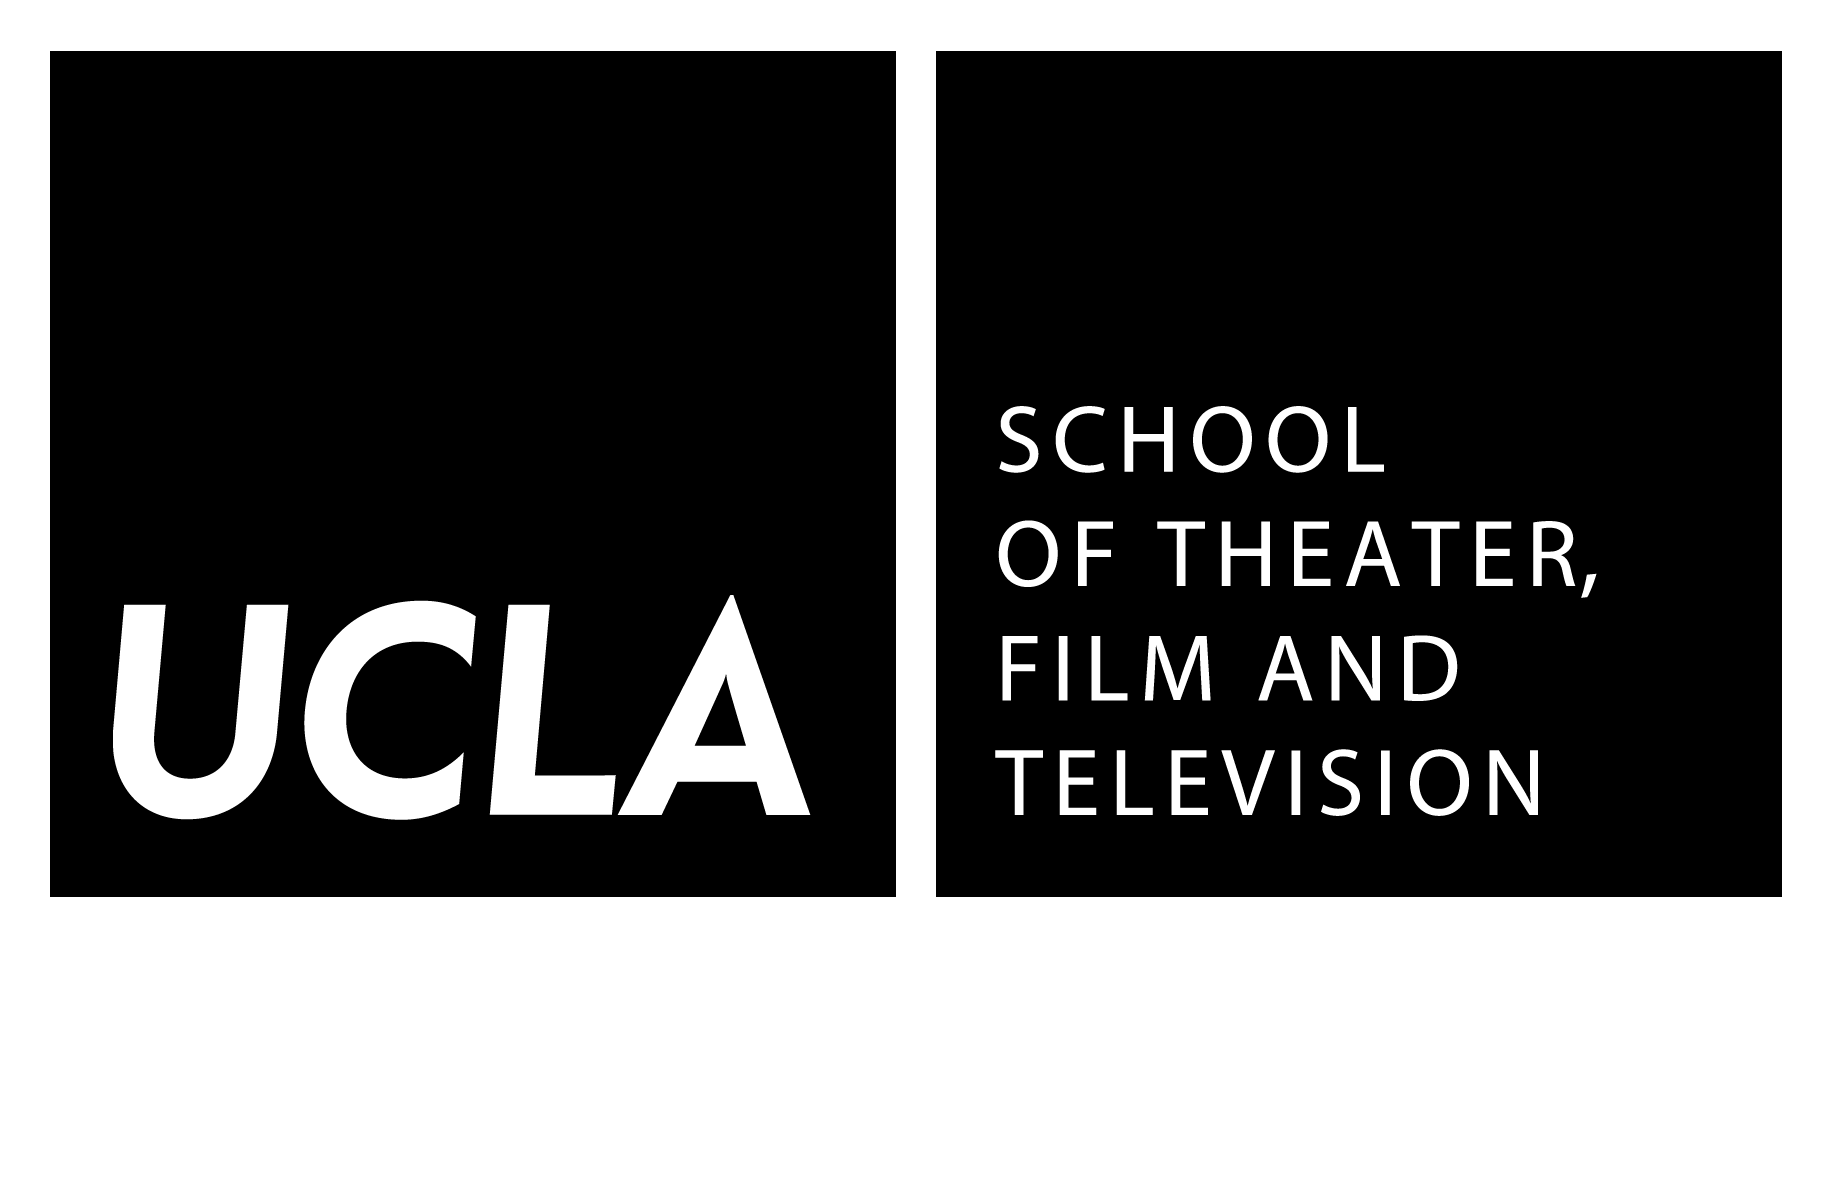 THEATER Tour for Prospective Students - Aug 2